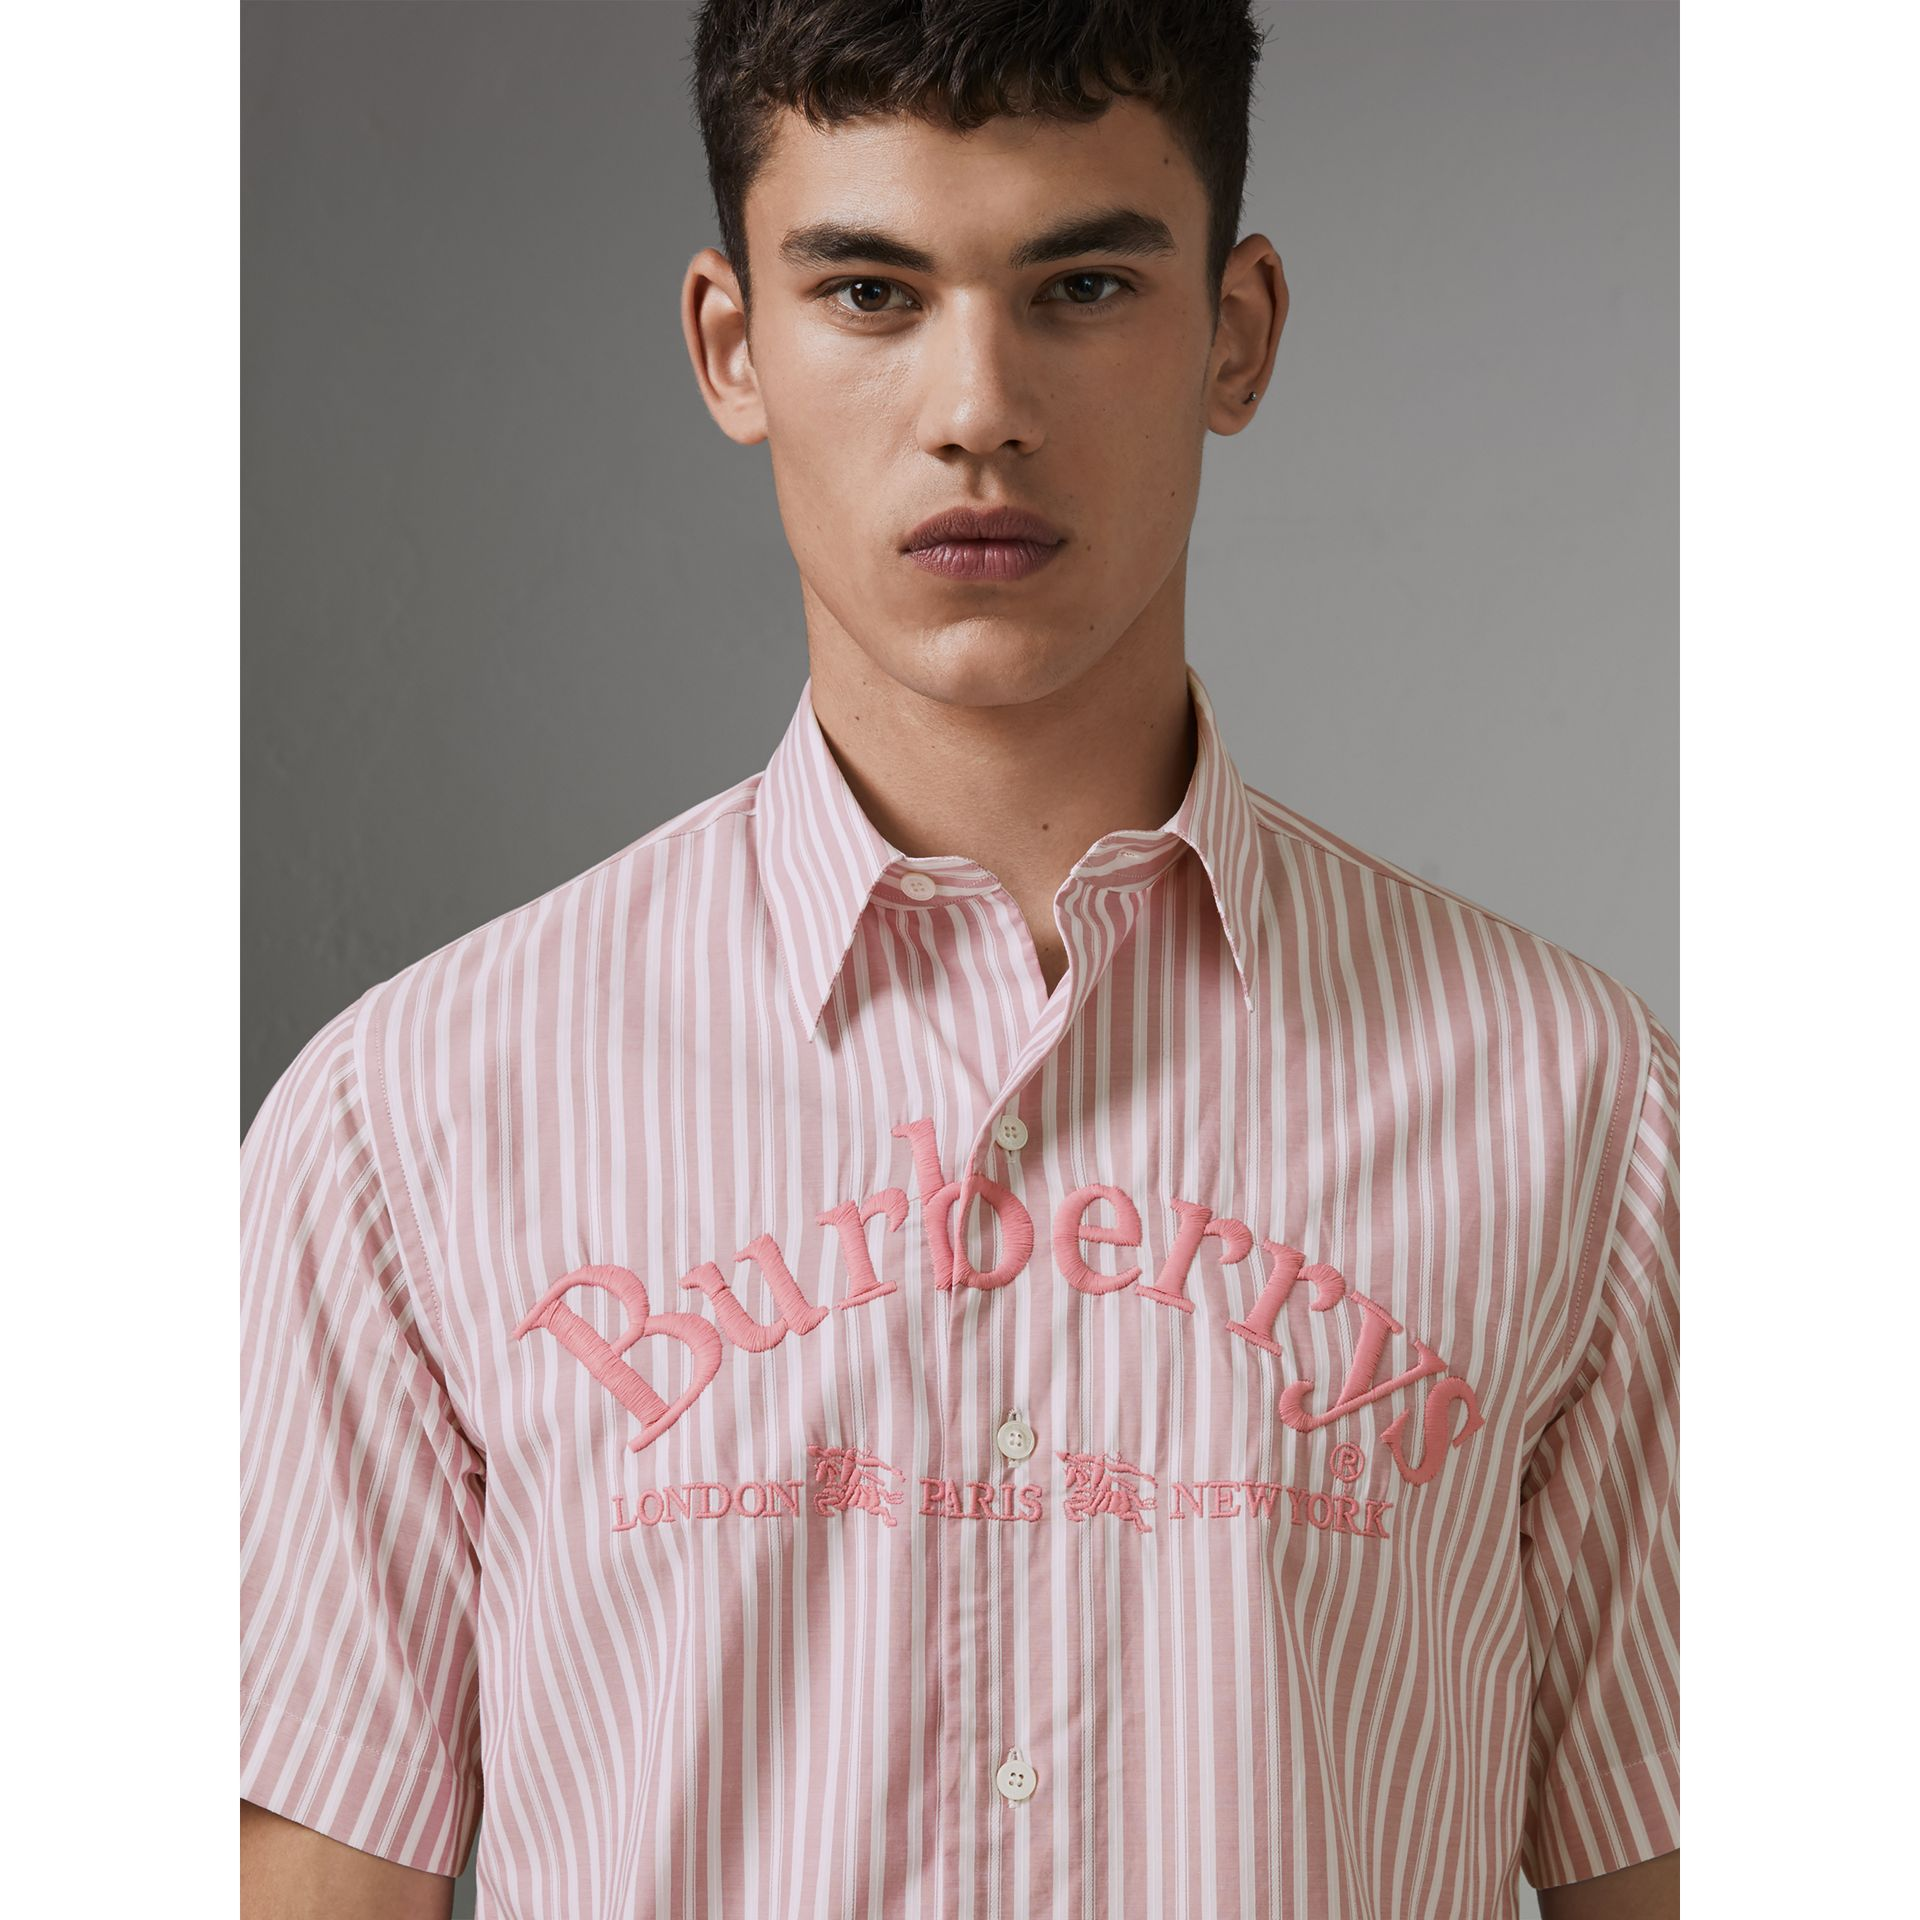 Embroidered Archive Logo Striped Short-sleeve Shirt in Light Pink - Men | Burberry - gallery image 1